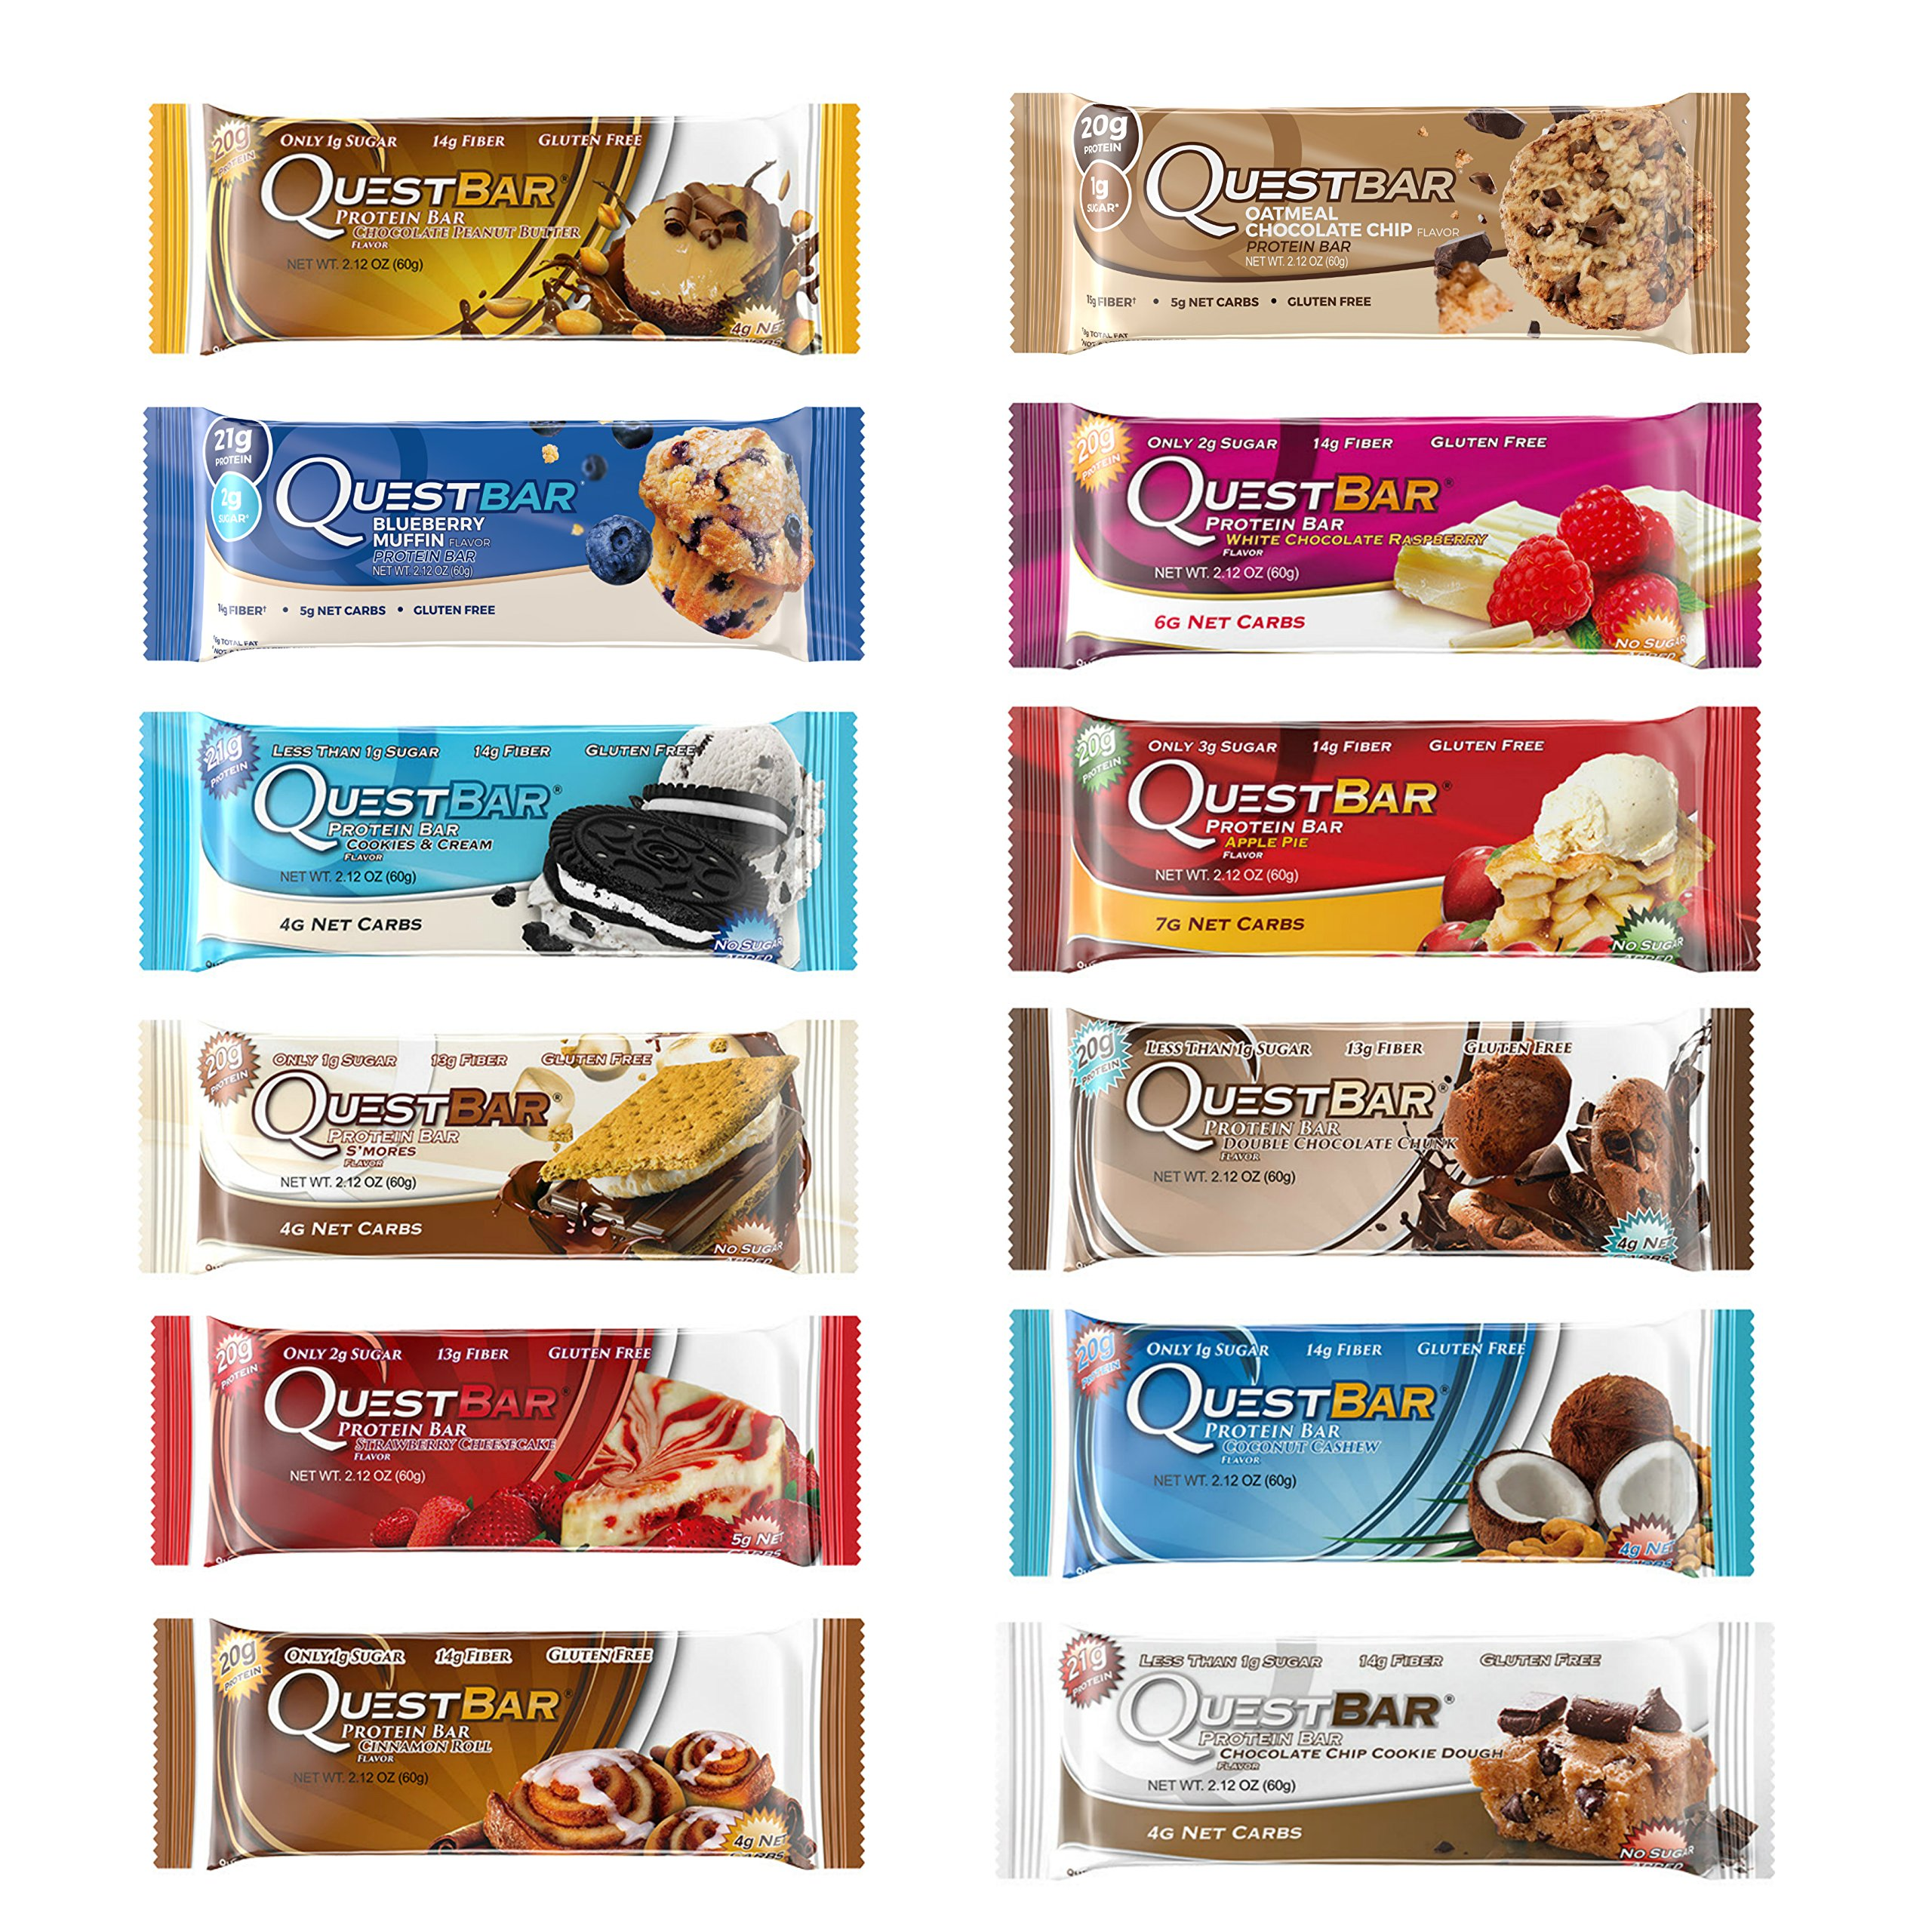 Quest Nutrition Protein Bar Adventure Variety Pack. Low Carb Meal Replacement Bar w/20g+ Protein. High Fiber, Soy-Free, Gluten-Free (12 Count)